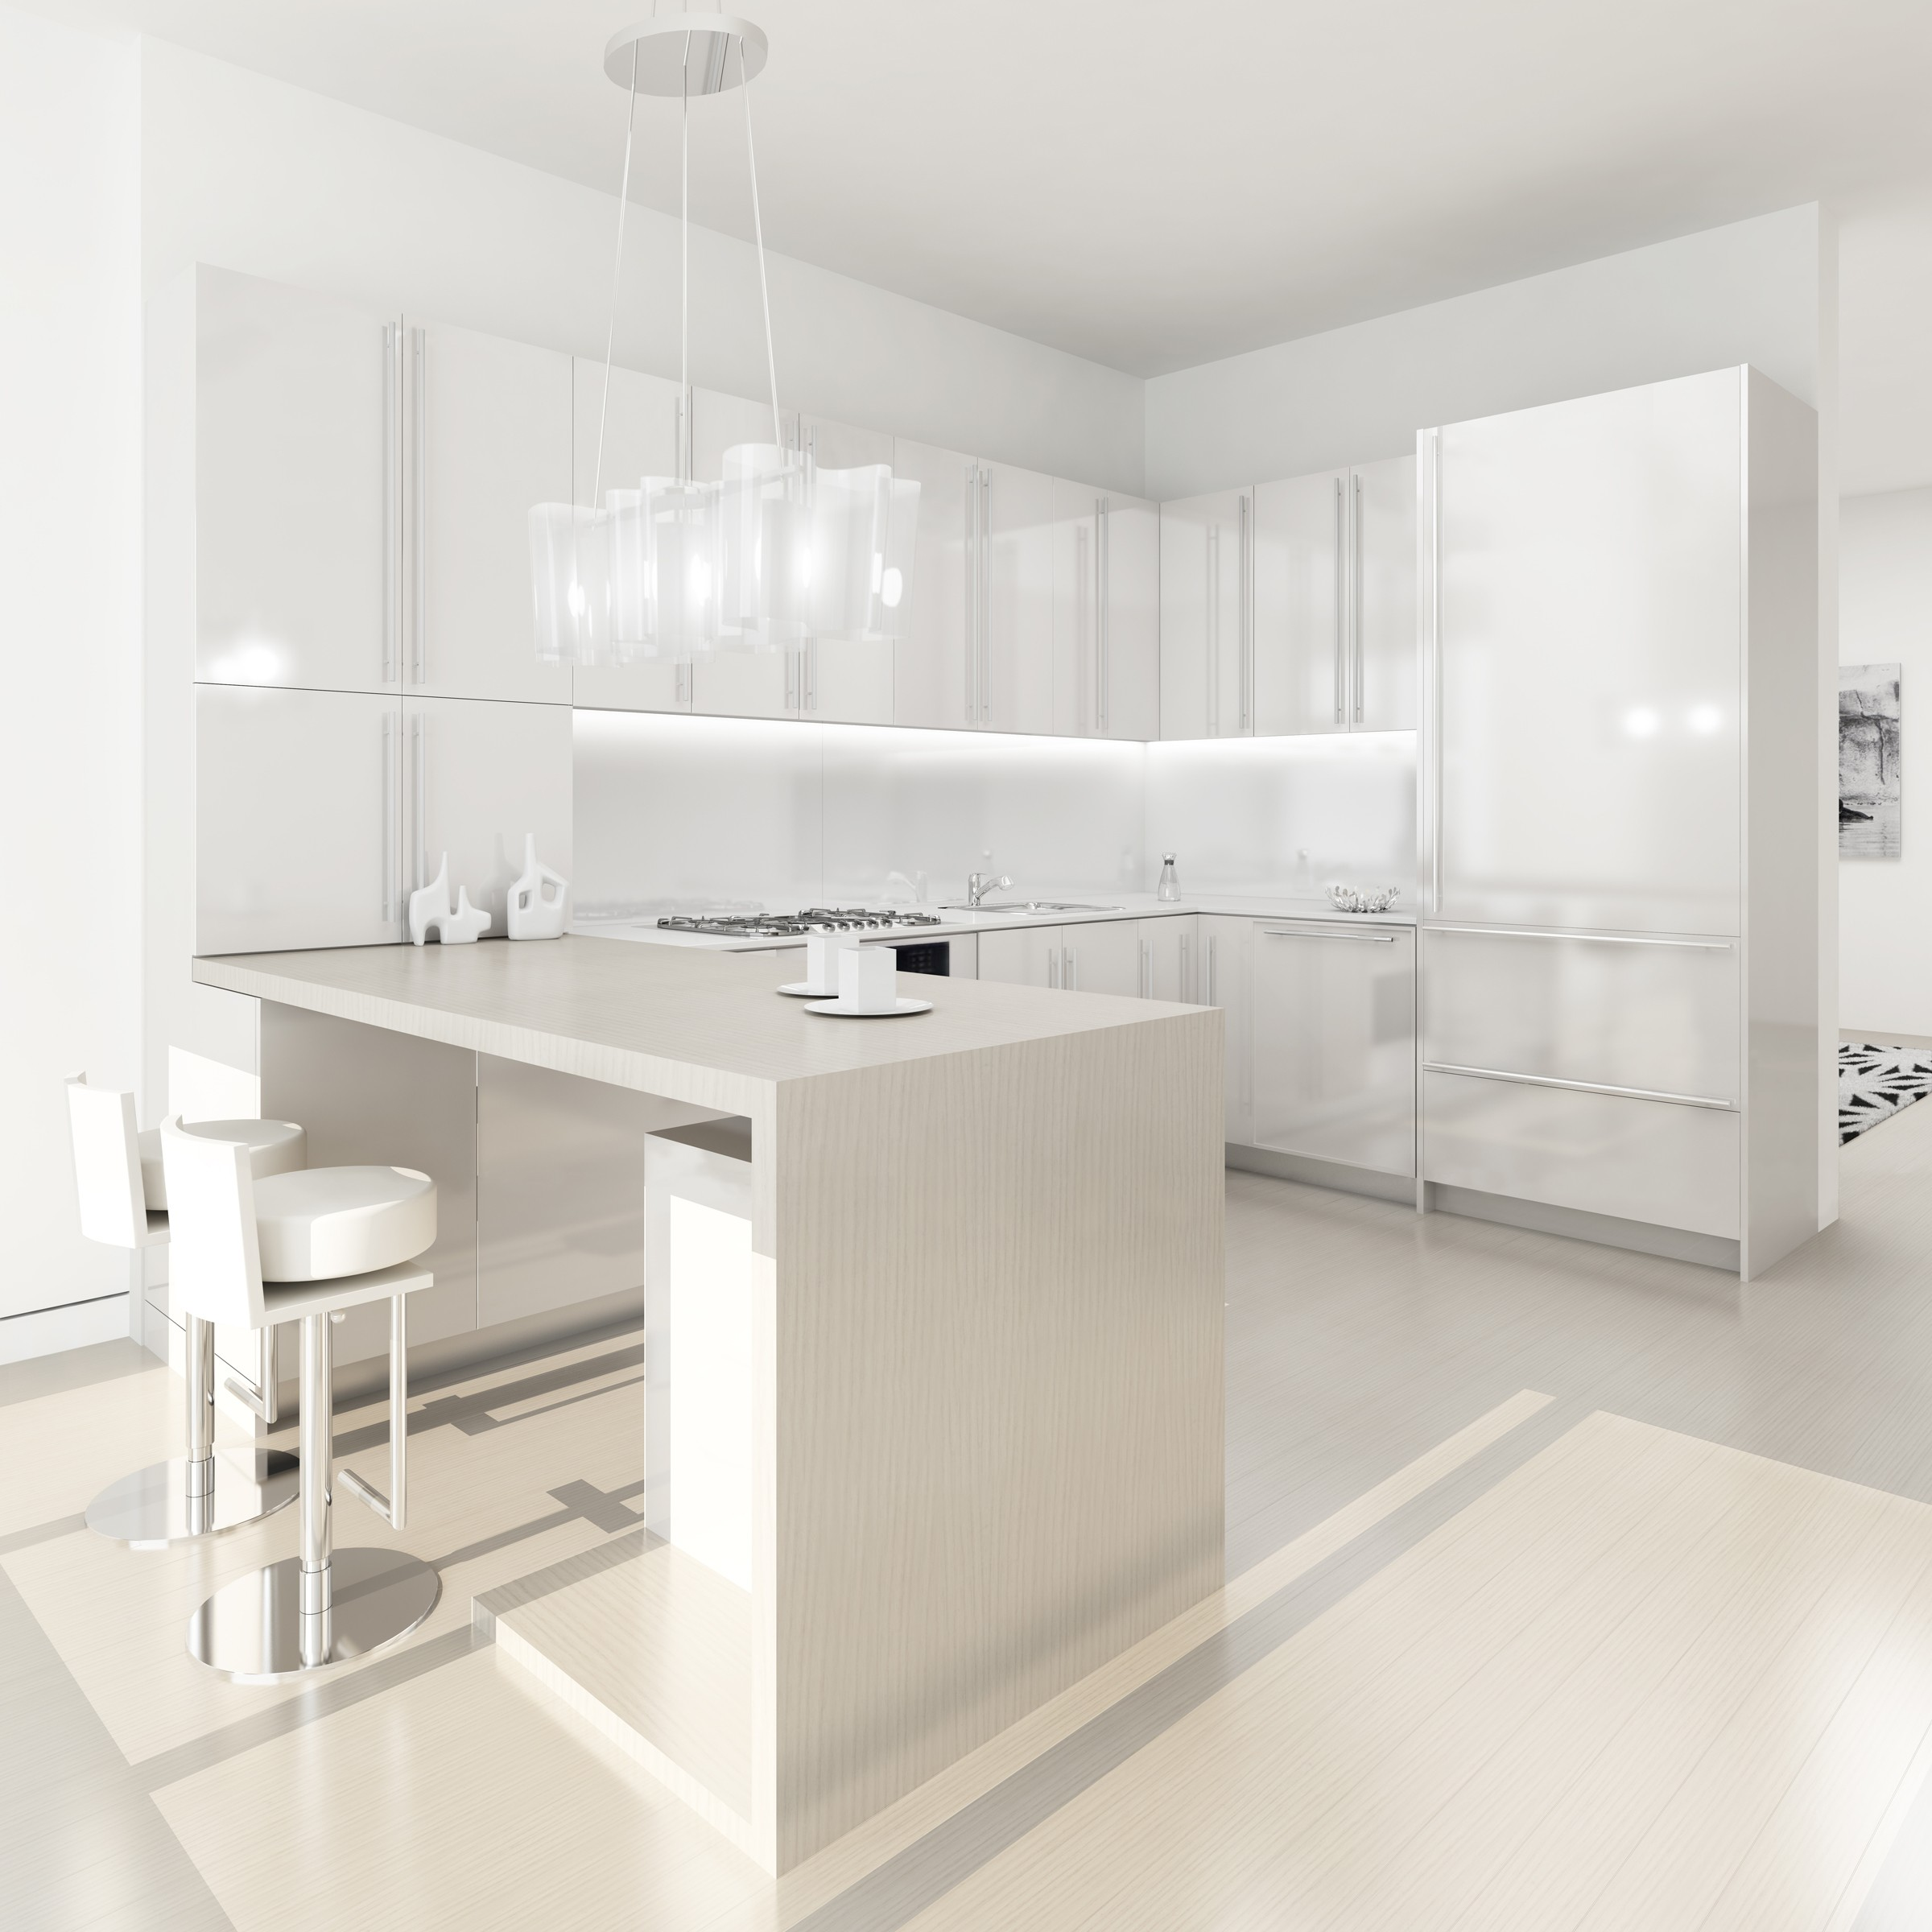 White Model Kitchen Interior photo - 3